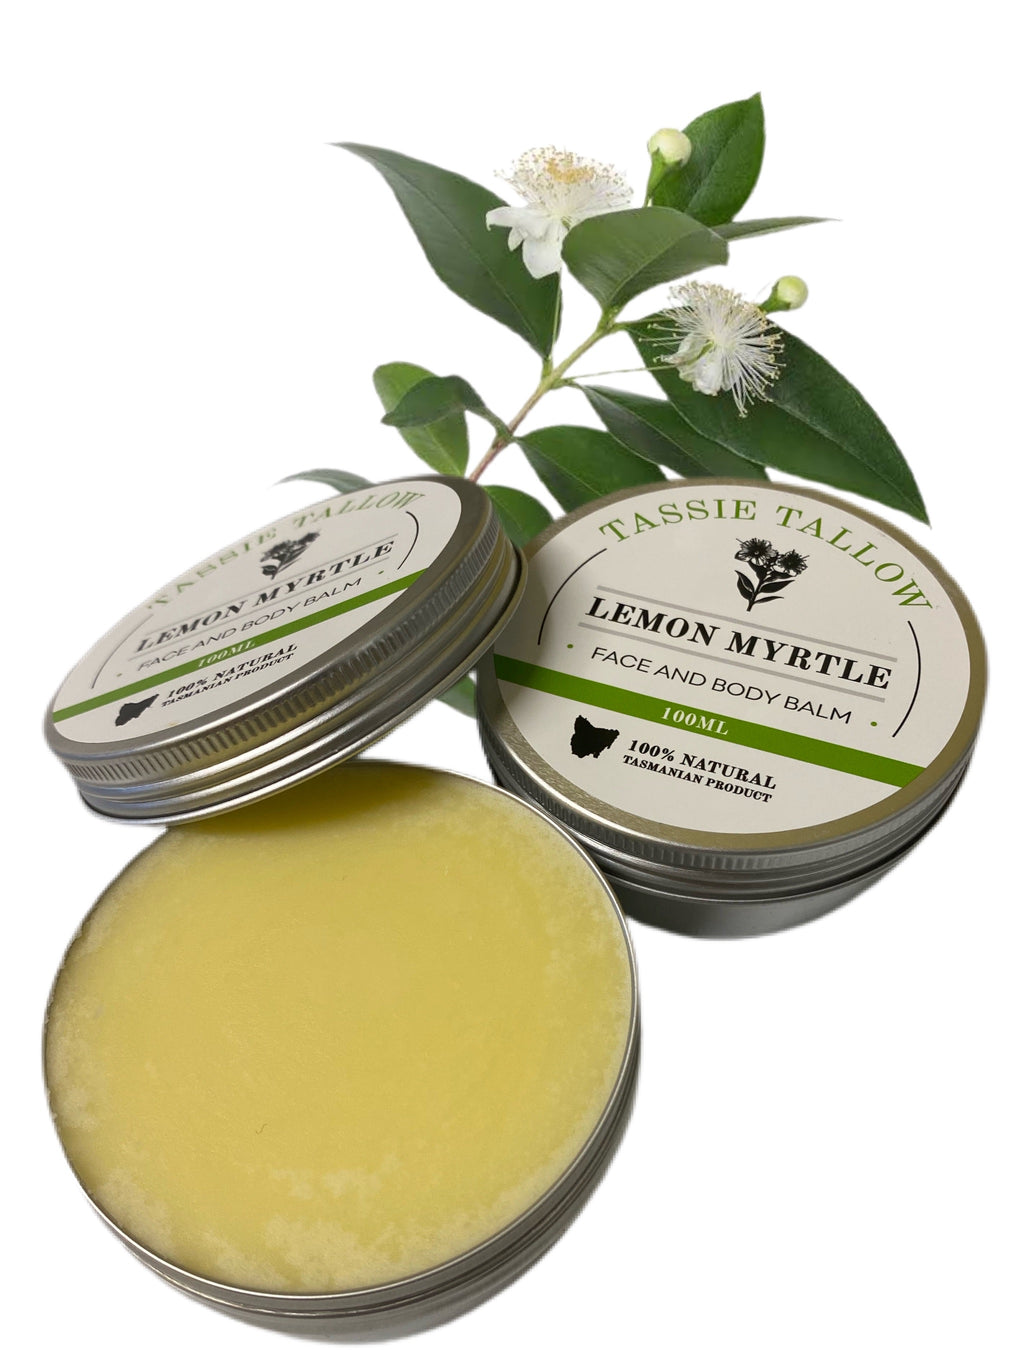 Tallow Face & Body Balm | Lemon Myrtle | 100mL